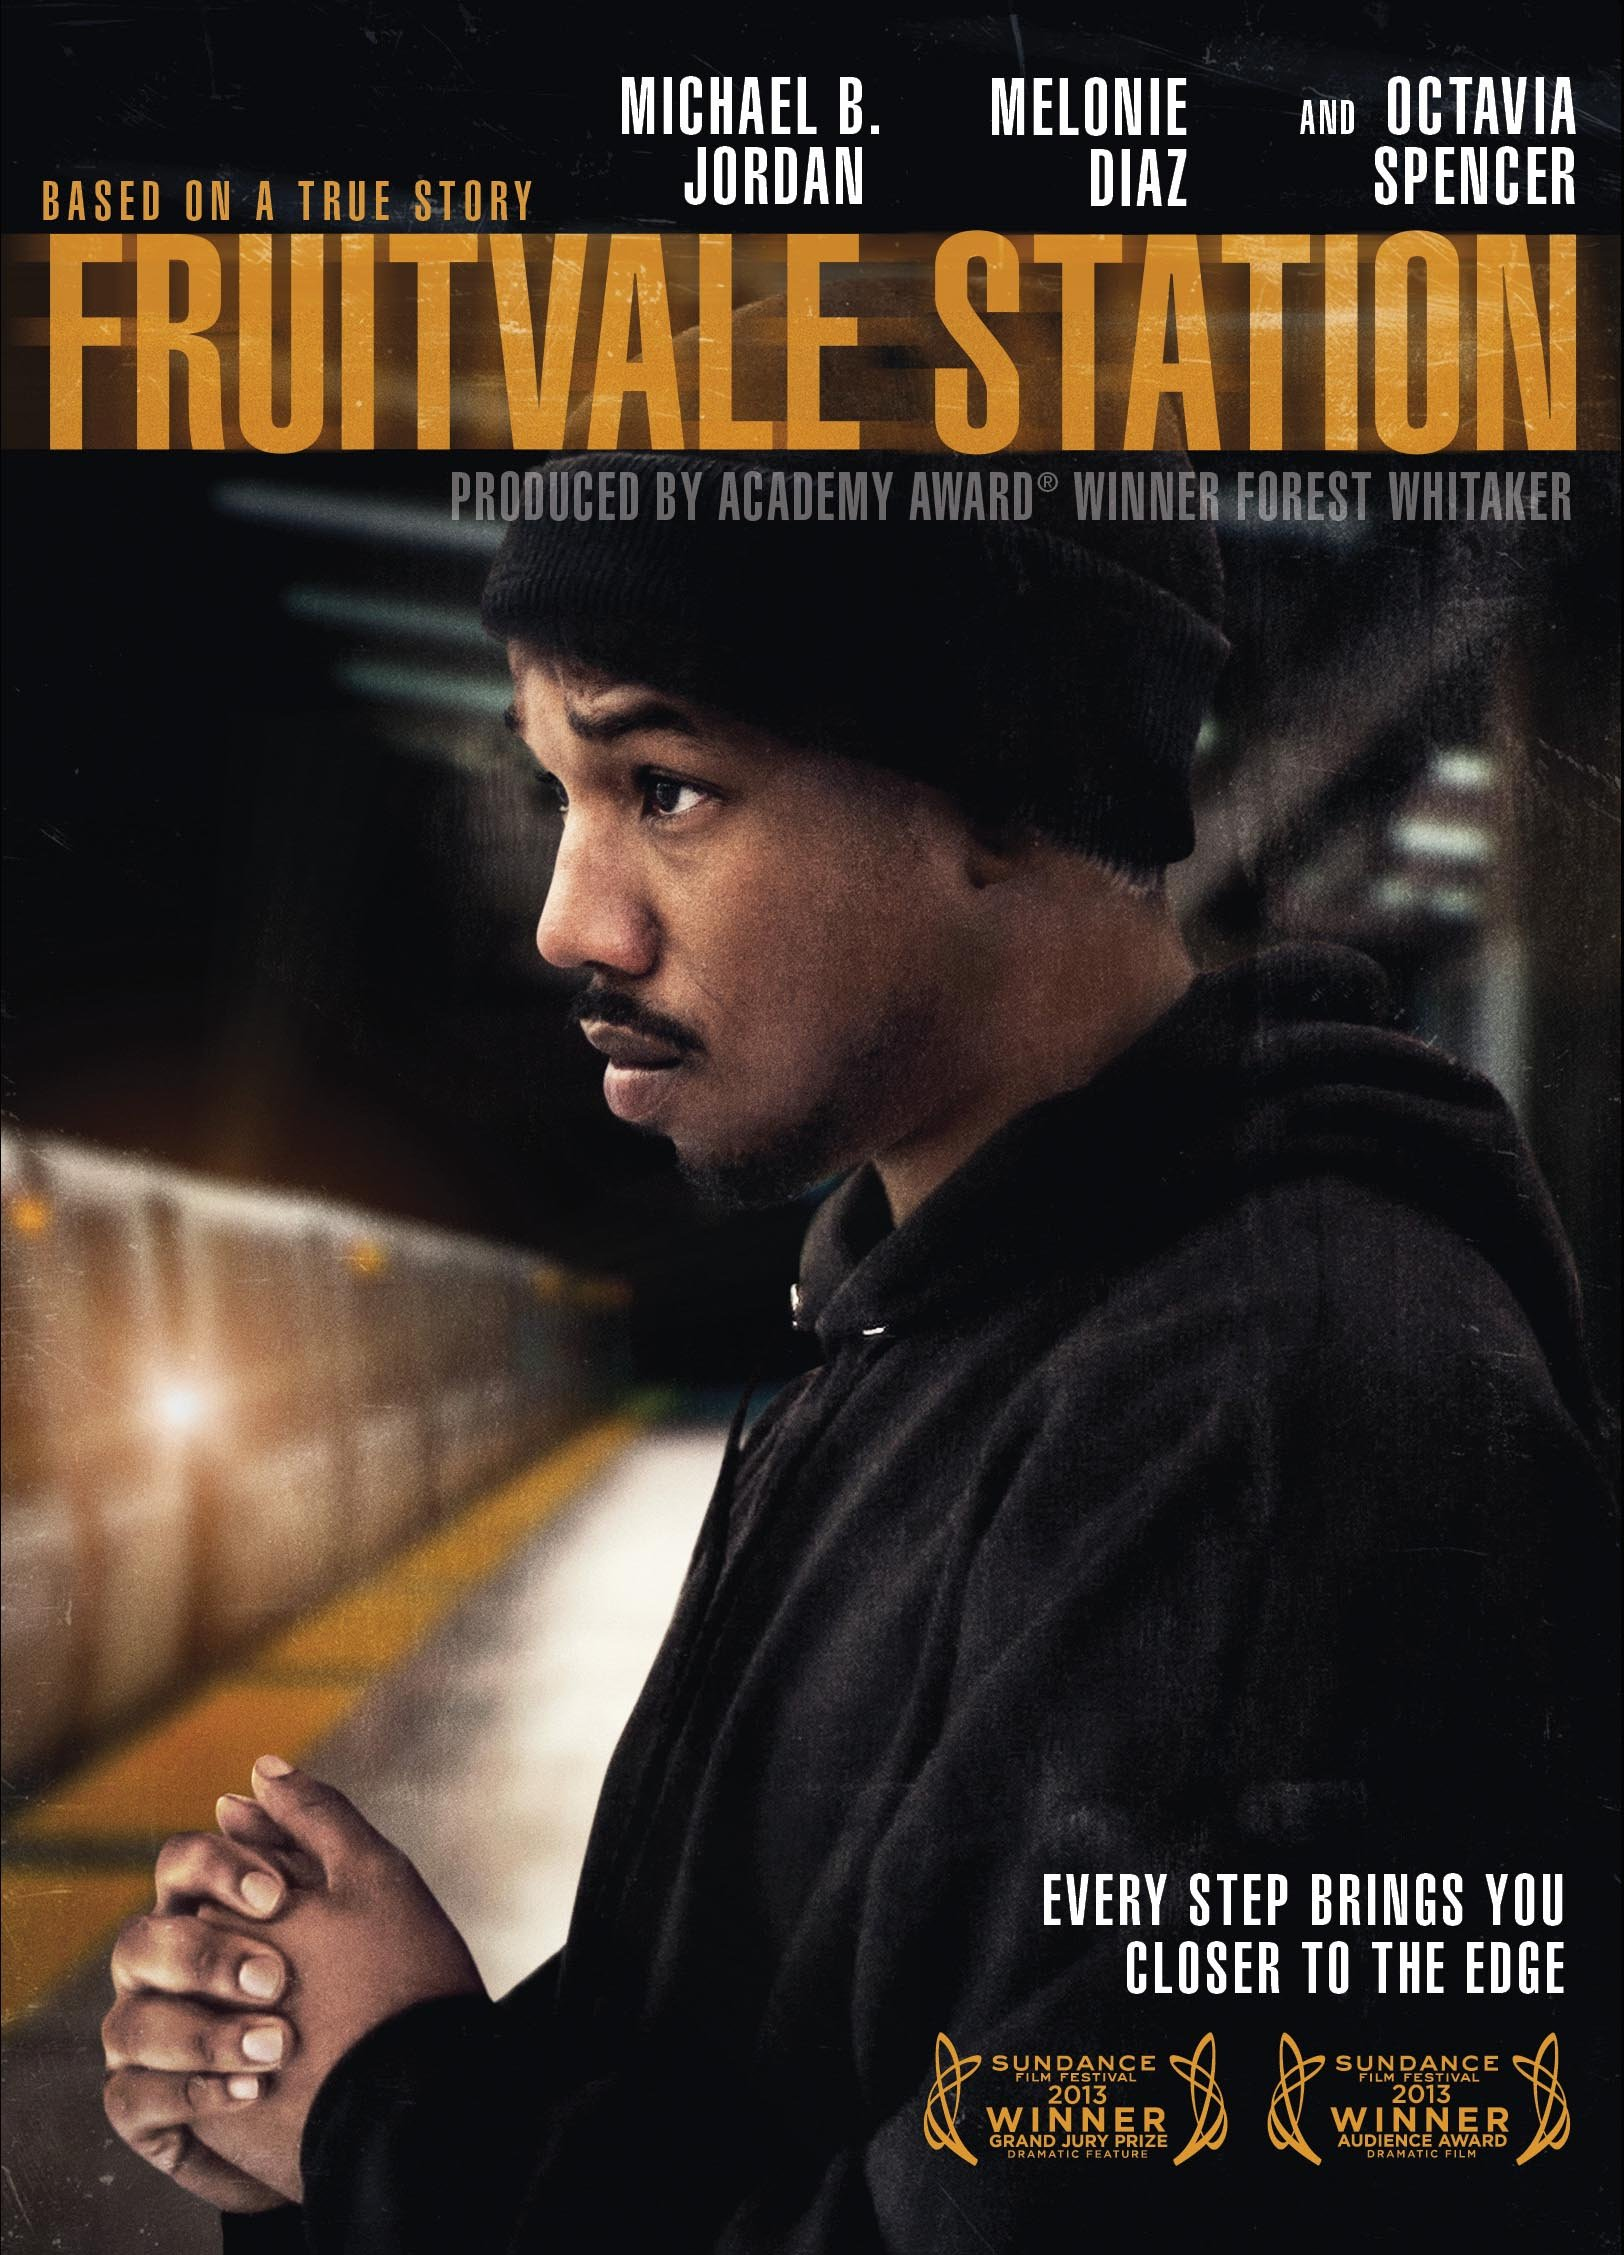 Fruitvale Station Oscar Grant Girlfriend likewise Watch moreover 2487101 in addition Allen Iverson also Historys Greatest Hidden Figures Behind Apollo Missions. on oscar fruitvale station story